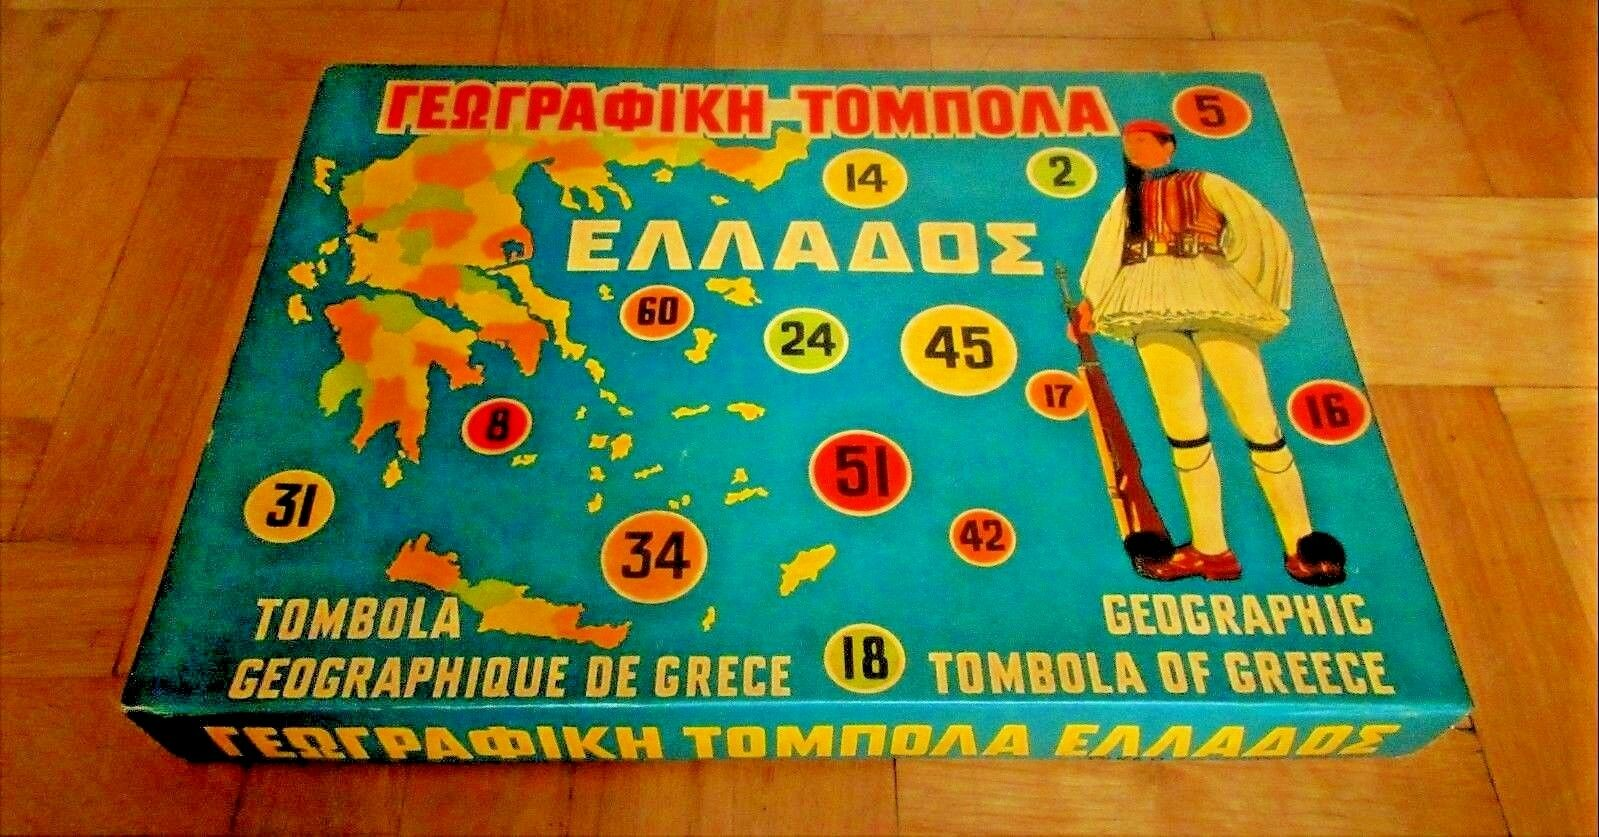 UNIQUE VINTAGE GREEK LITHO BOARD GAME - GEOGRAPHIC TOMBOLA  - BY EPA FROM 70s